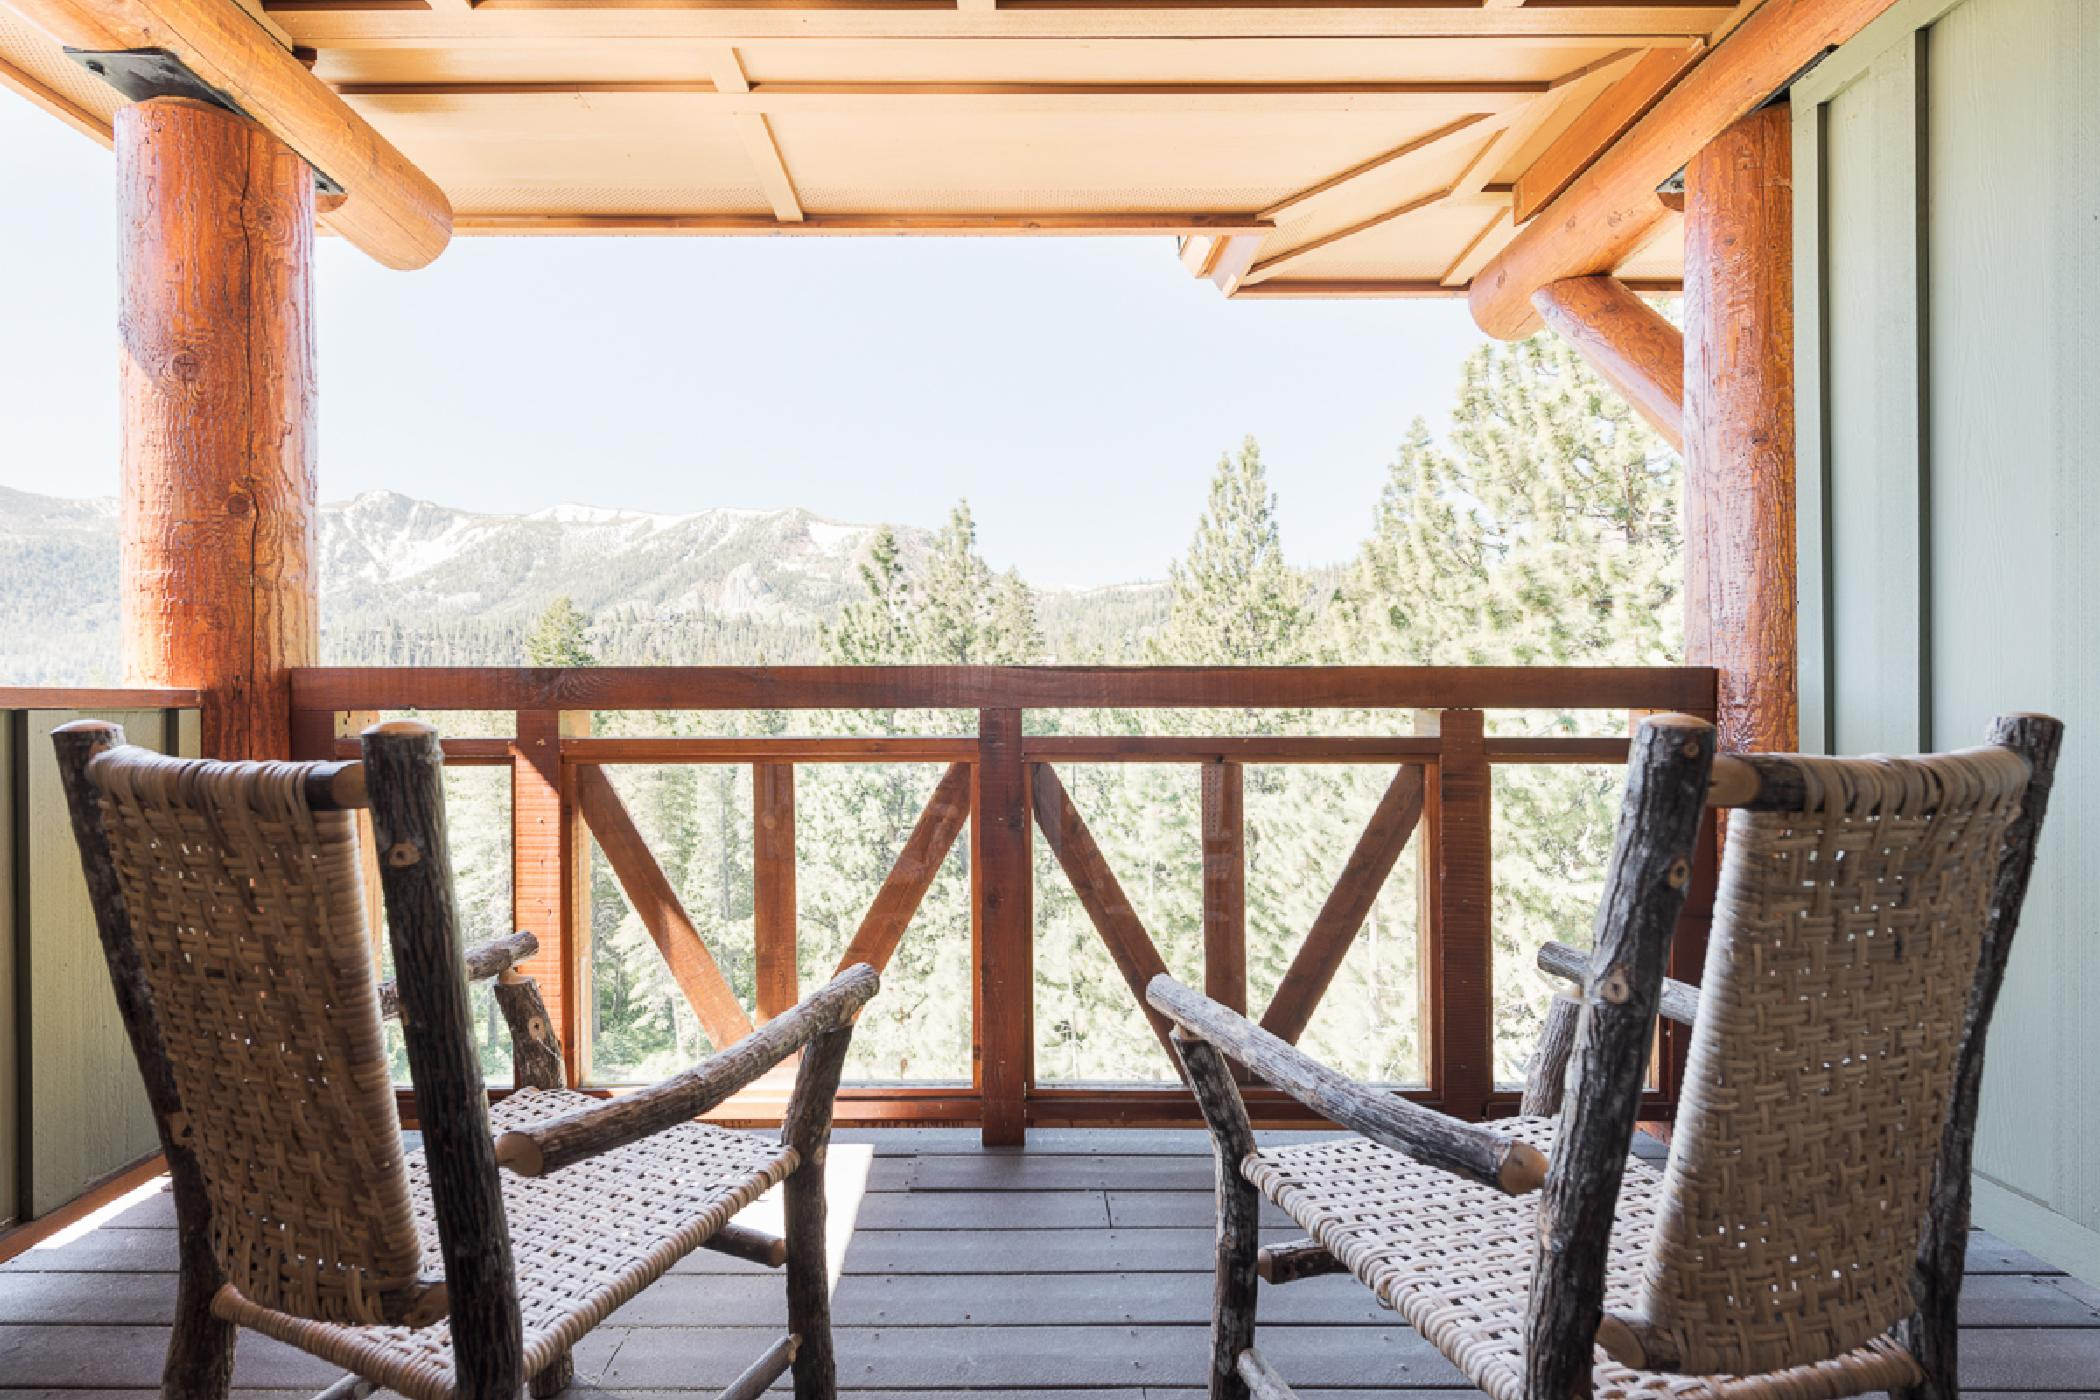 Juniper Crest 24 - Townhome w/ Unobstructed Views